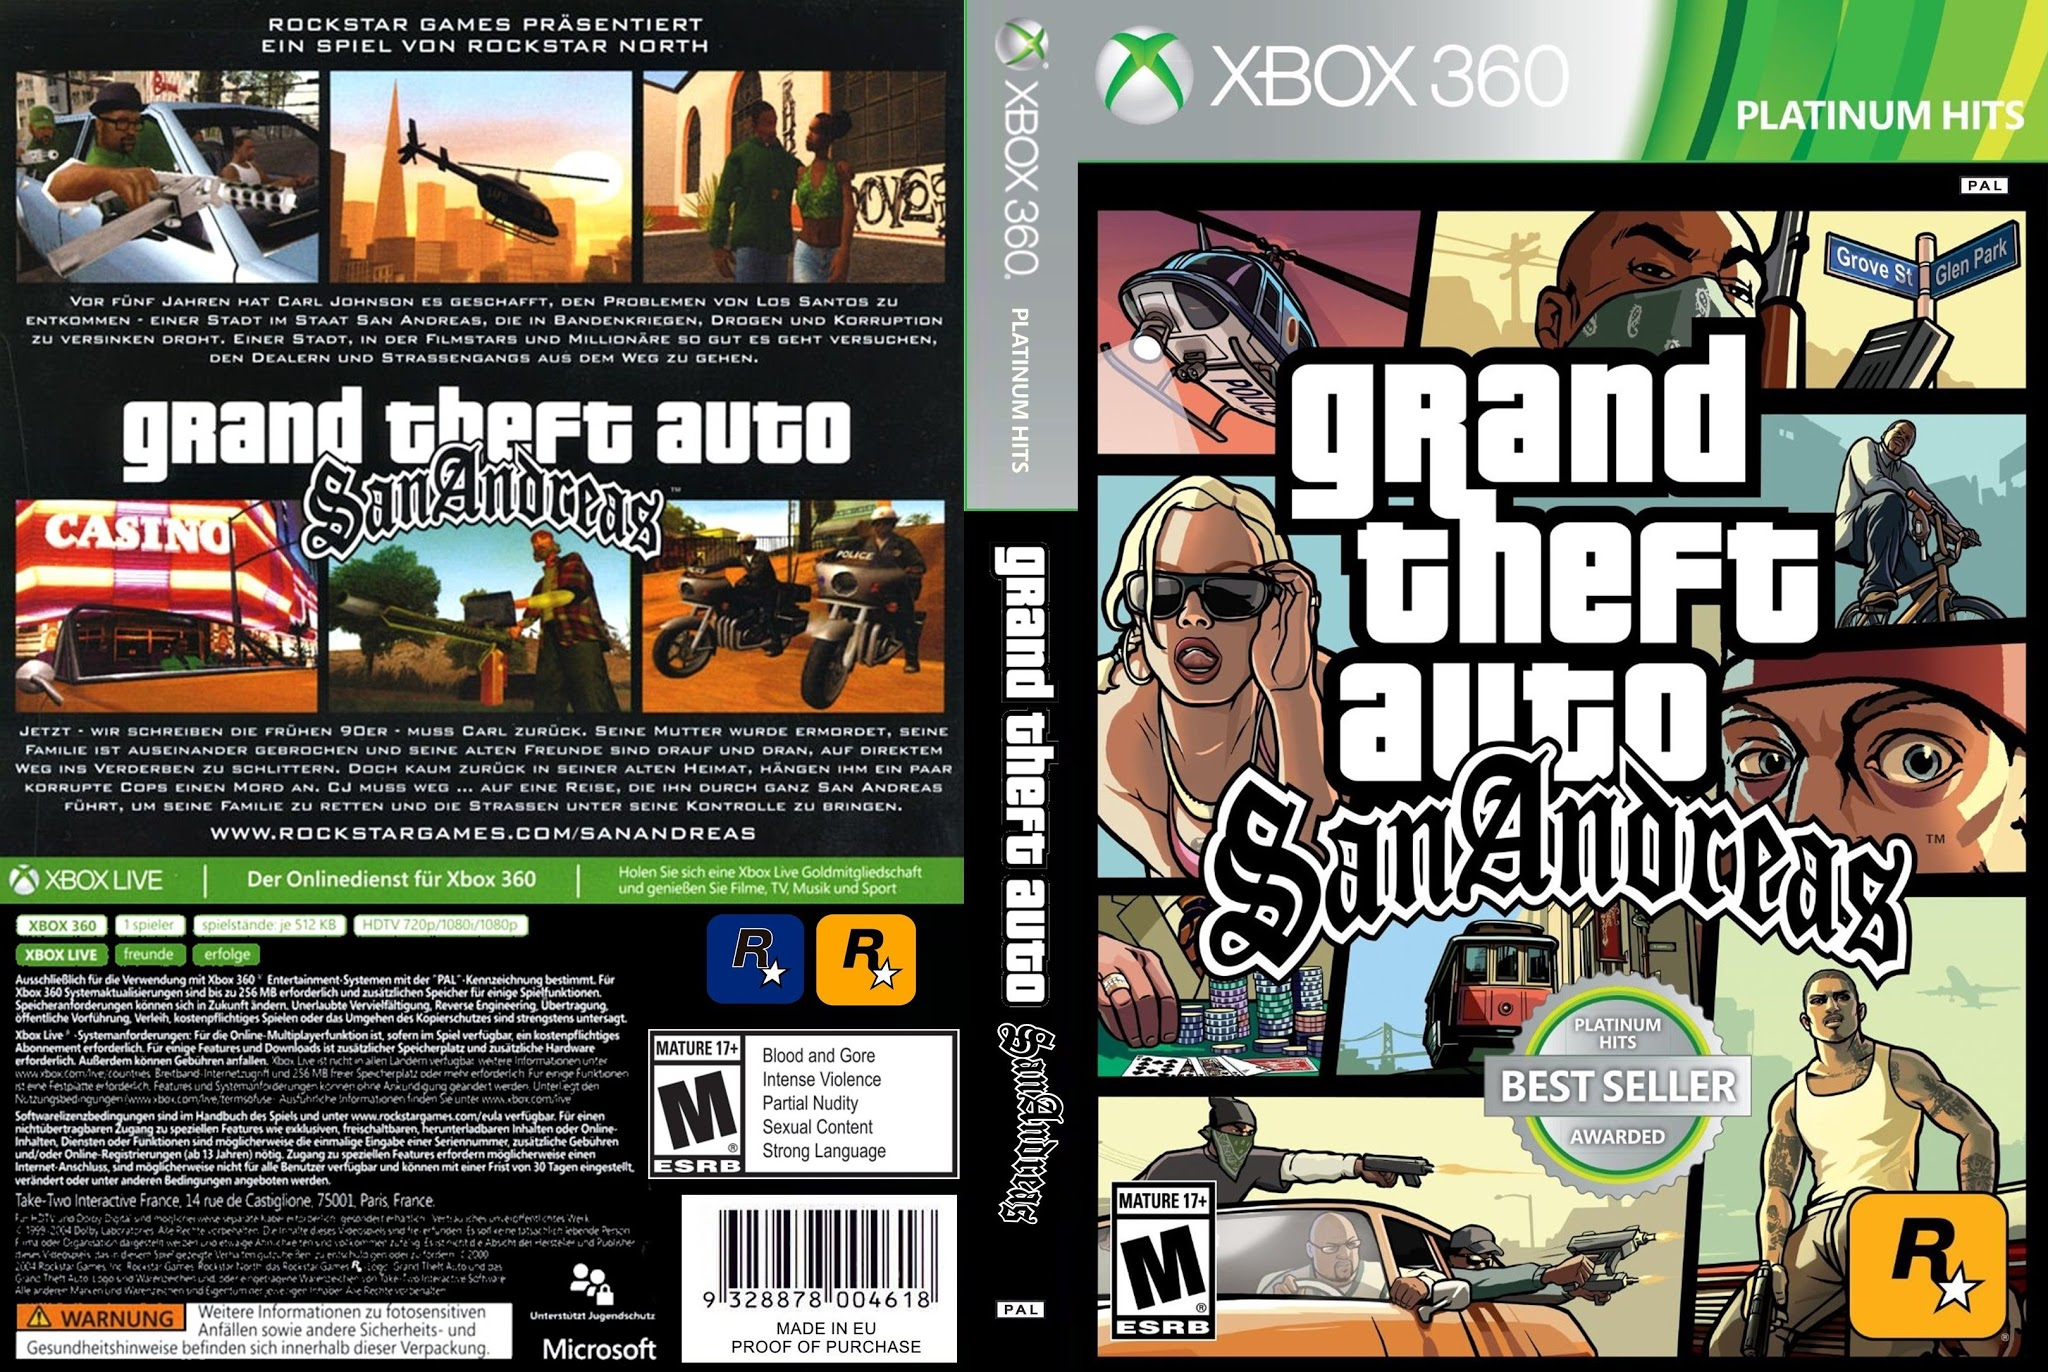 ps2 helicopter games with Gta San Andreas Per Xbox 360 on Grand Theft Auto in addition UP4415 CUSA02768 00 GOATSIMULATORPS4 additionally Cht0705 furthermore Grand Theft Auto Iii further Hulk Pc.